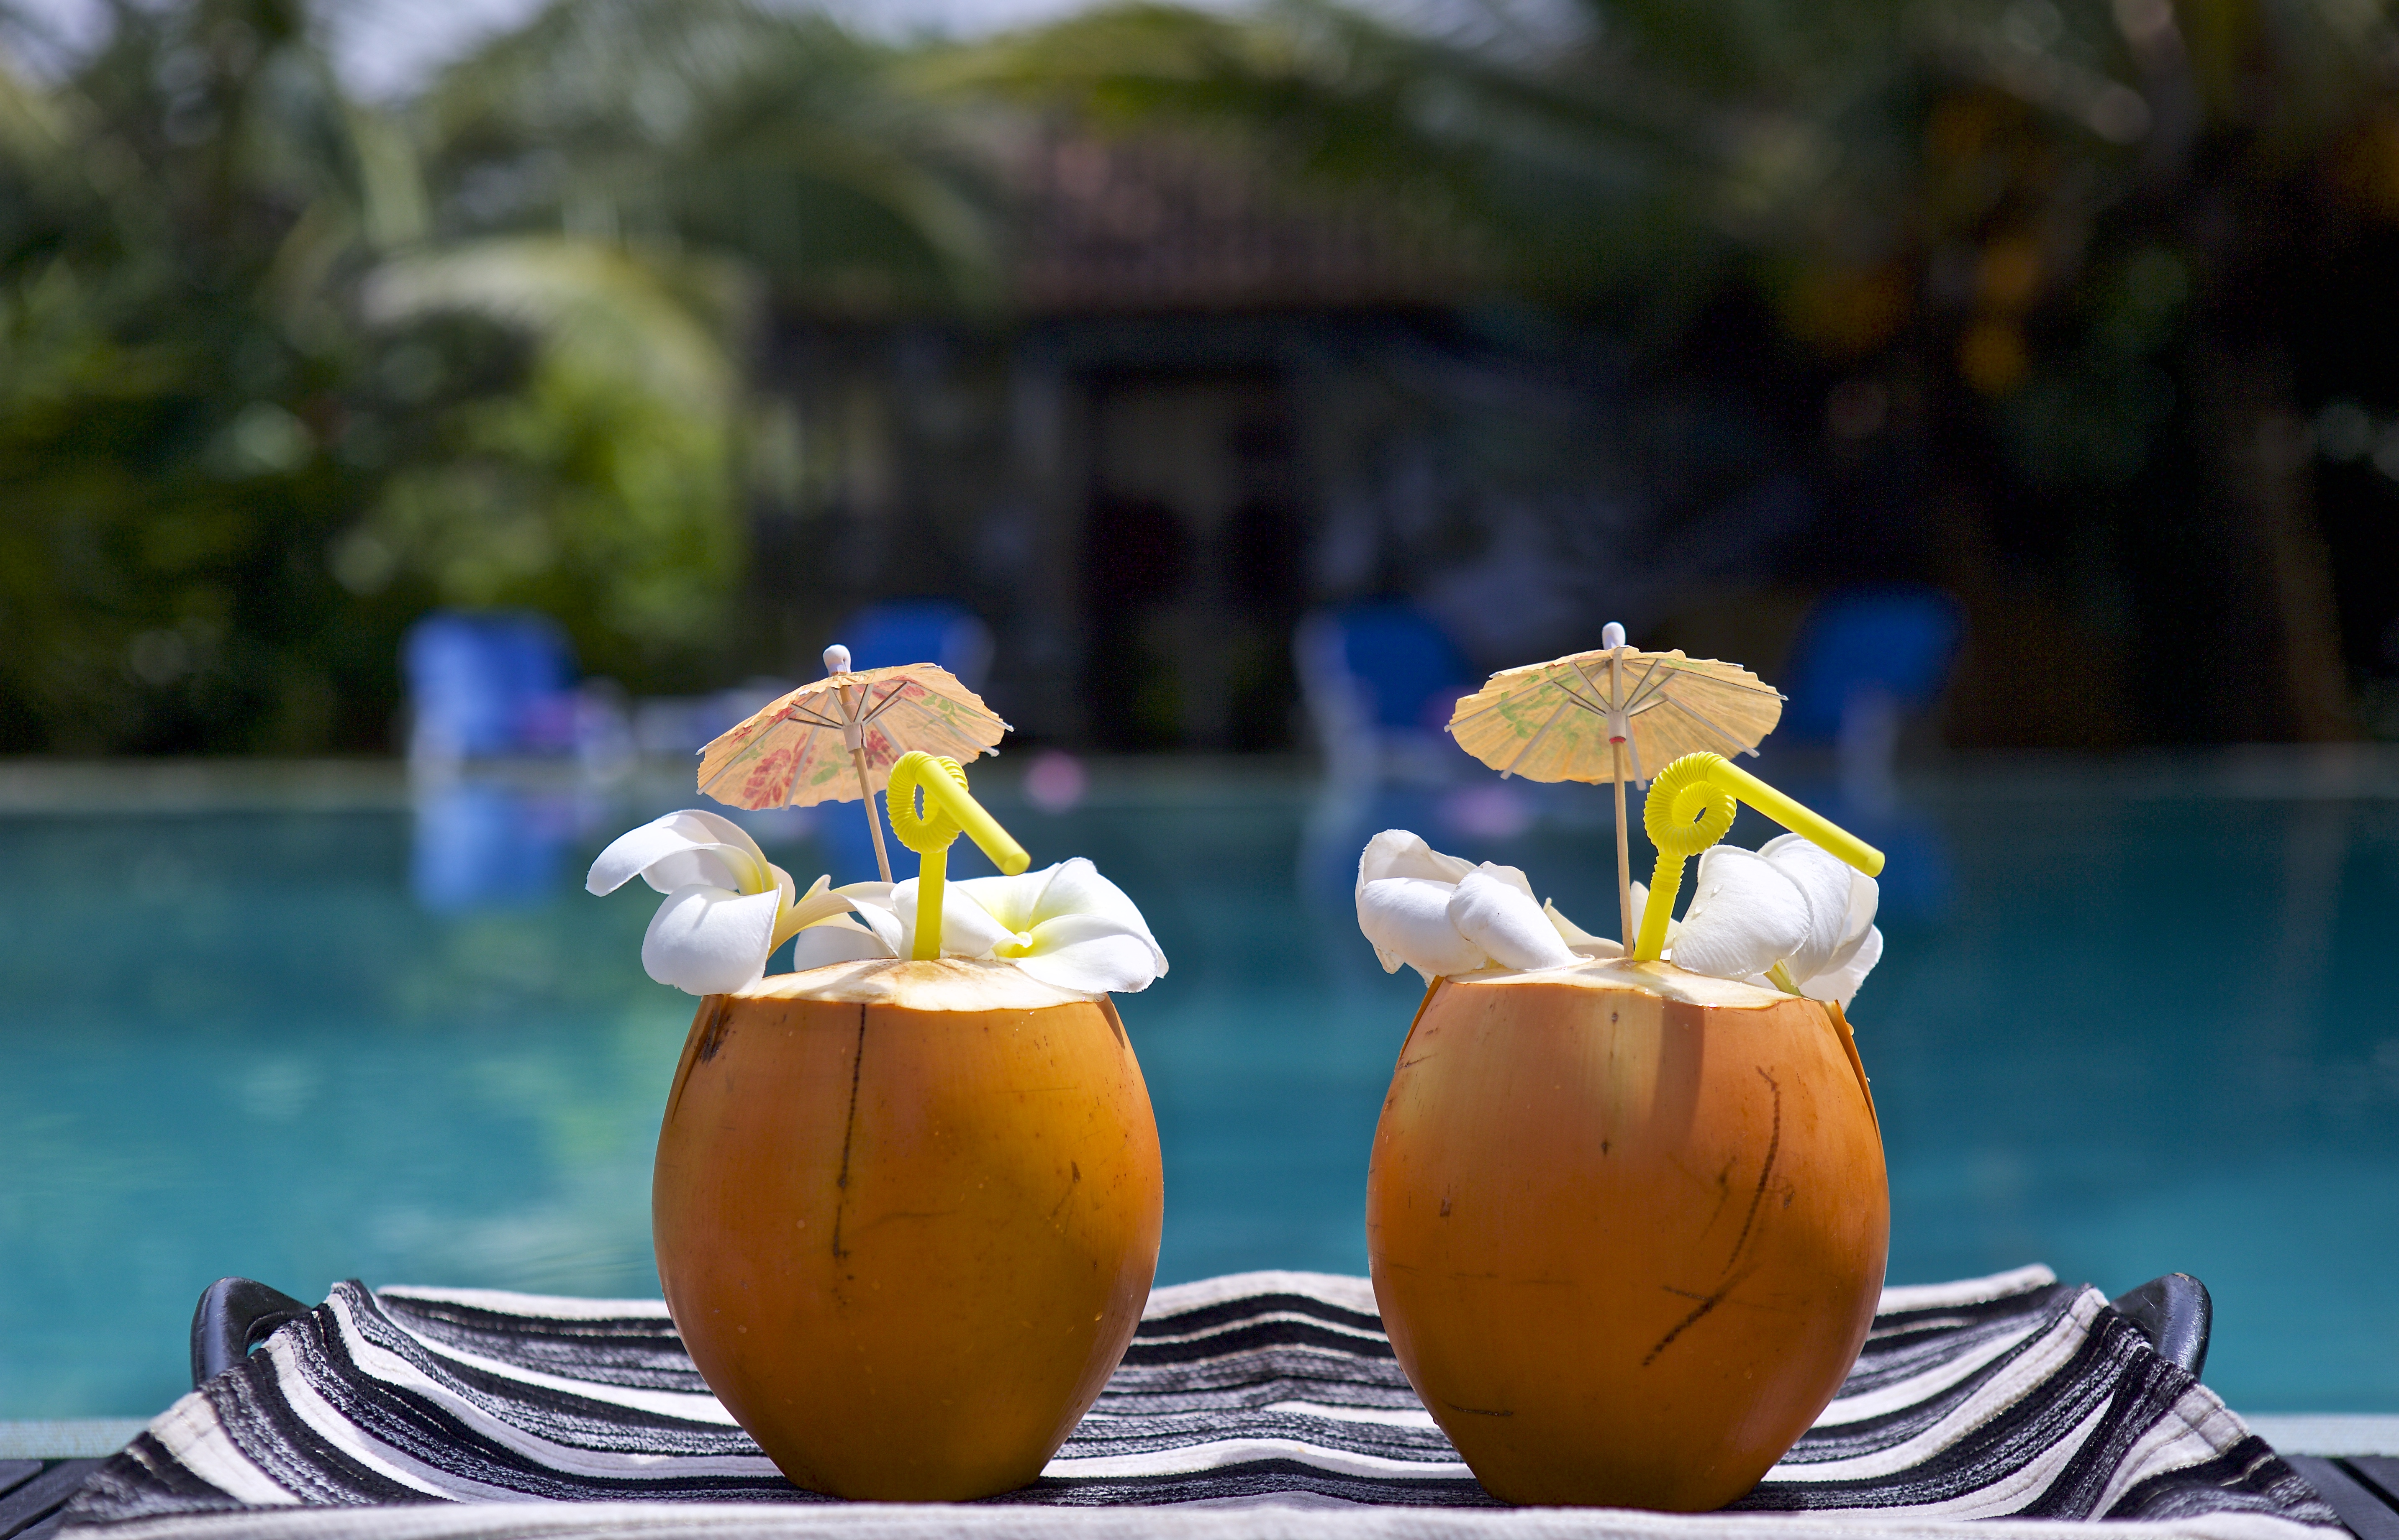 Sri Lanka cocktails by the pool. Coconuts with umbrellas.